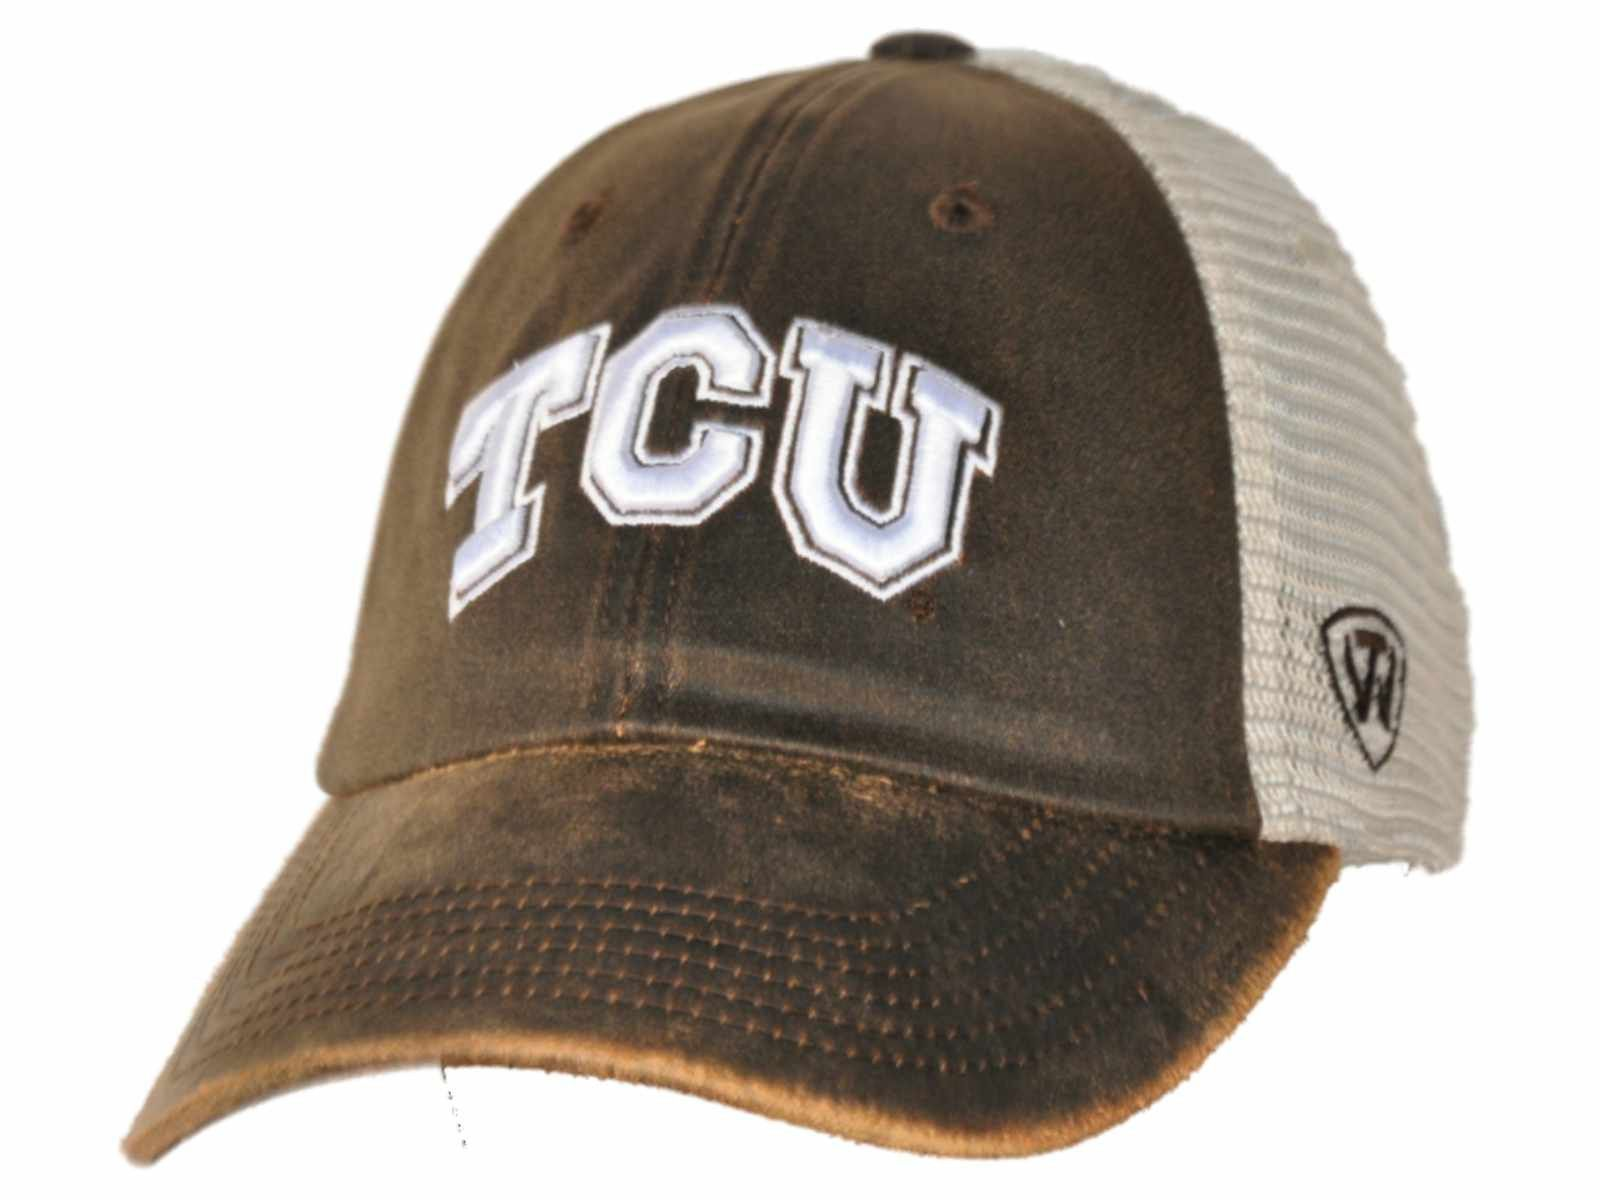 finest selection 4f96b 5b81a Made and Designed by Top of the World. - Size is a One Size Fits All -  Embroidered on the front is a TCU Horned Frogs logo.